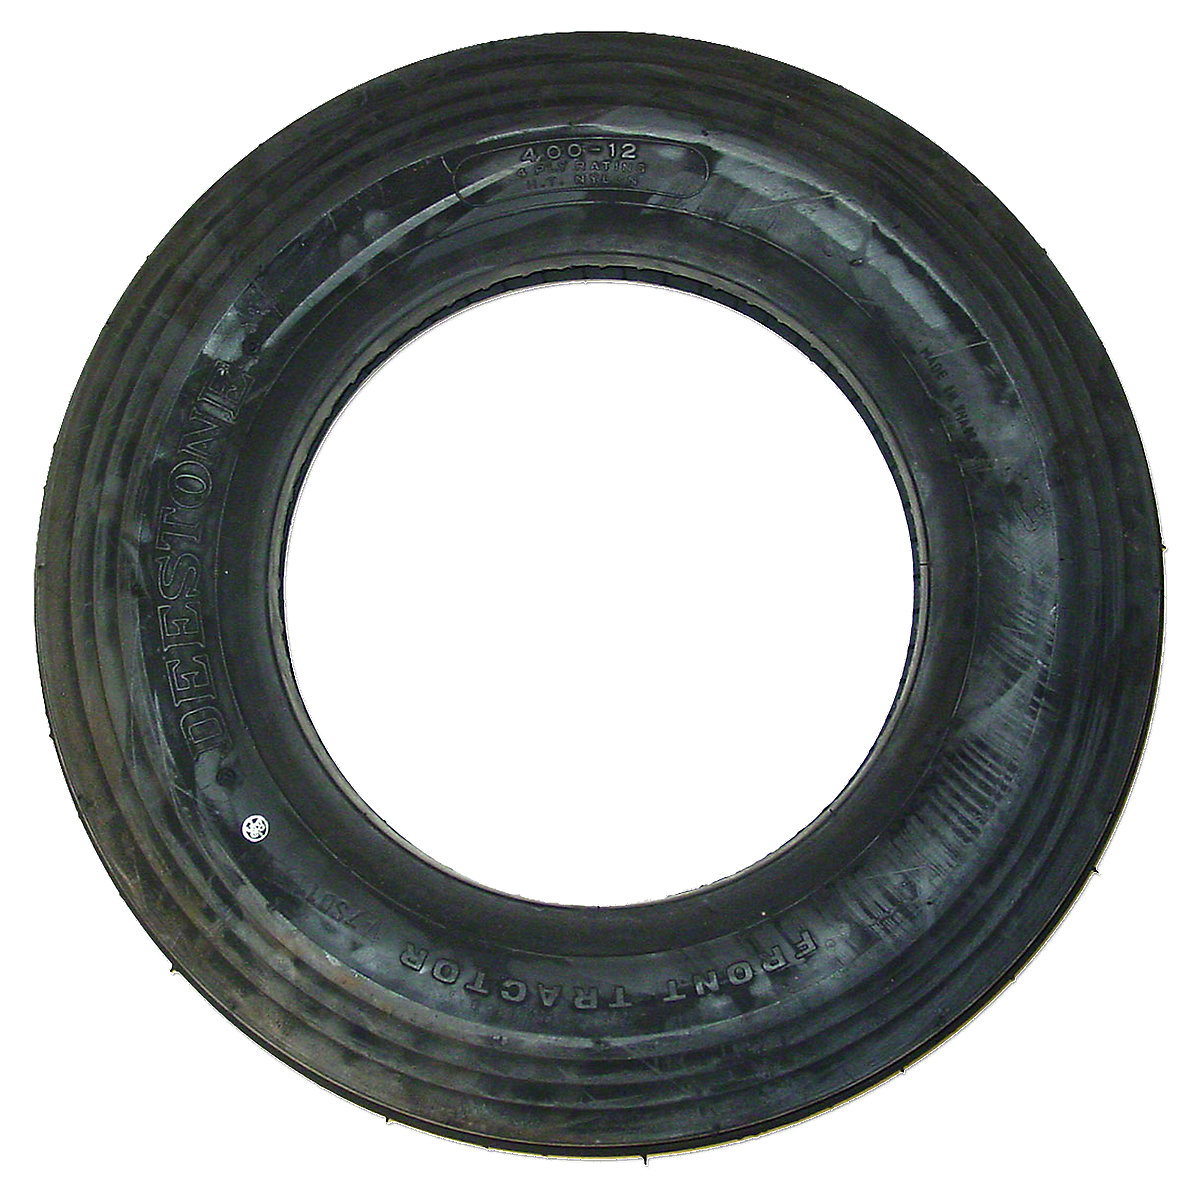 4.00X12 Triple Rib Front Tire For Allis Chalmers: G